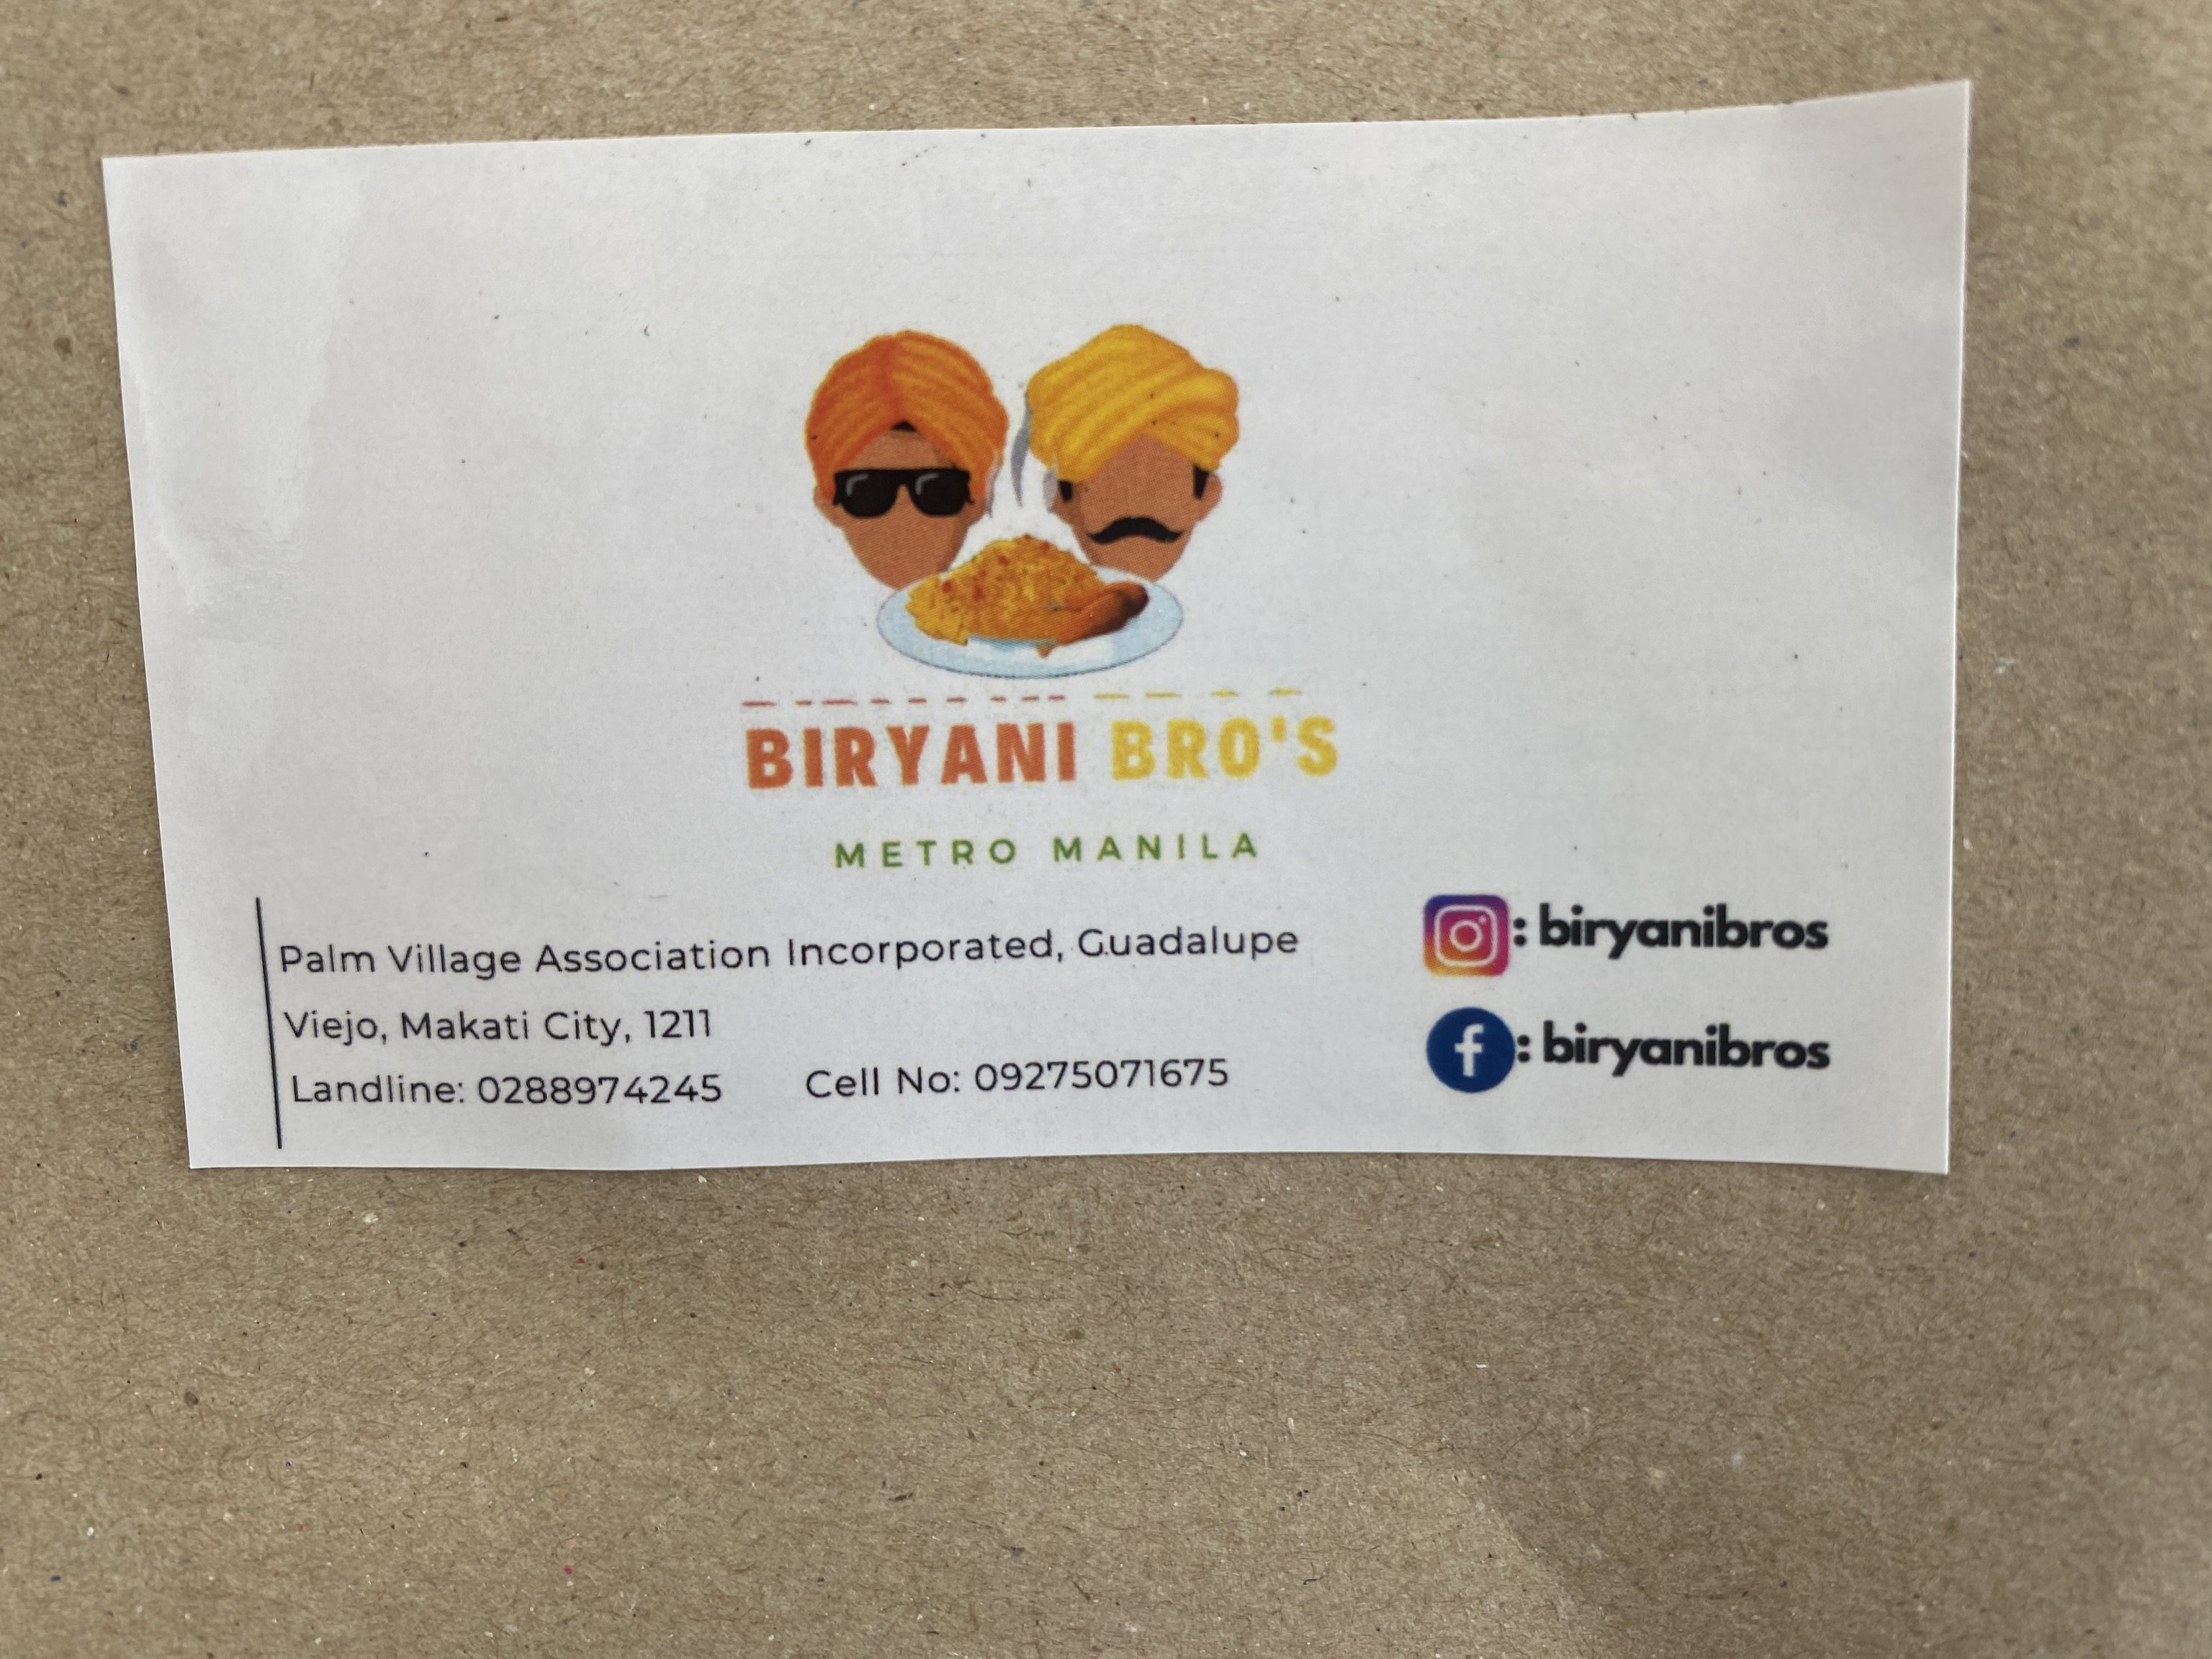 biryani-bros-review-indian-food-home-delivery.jpg